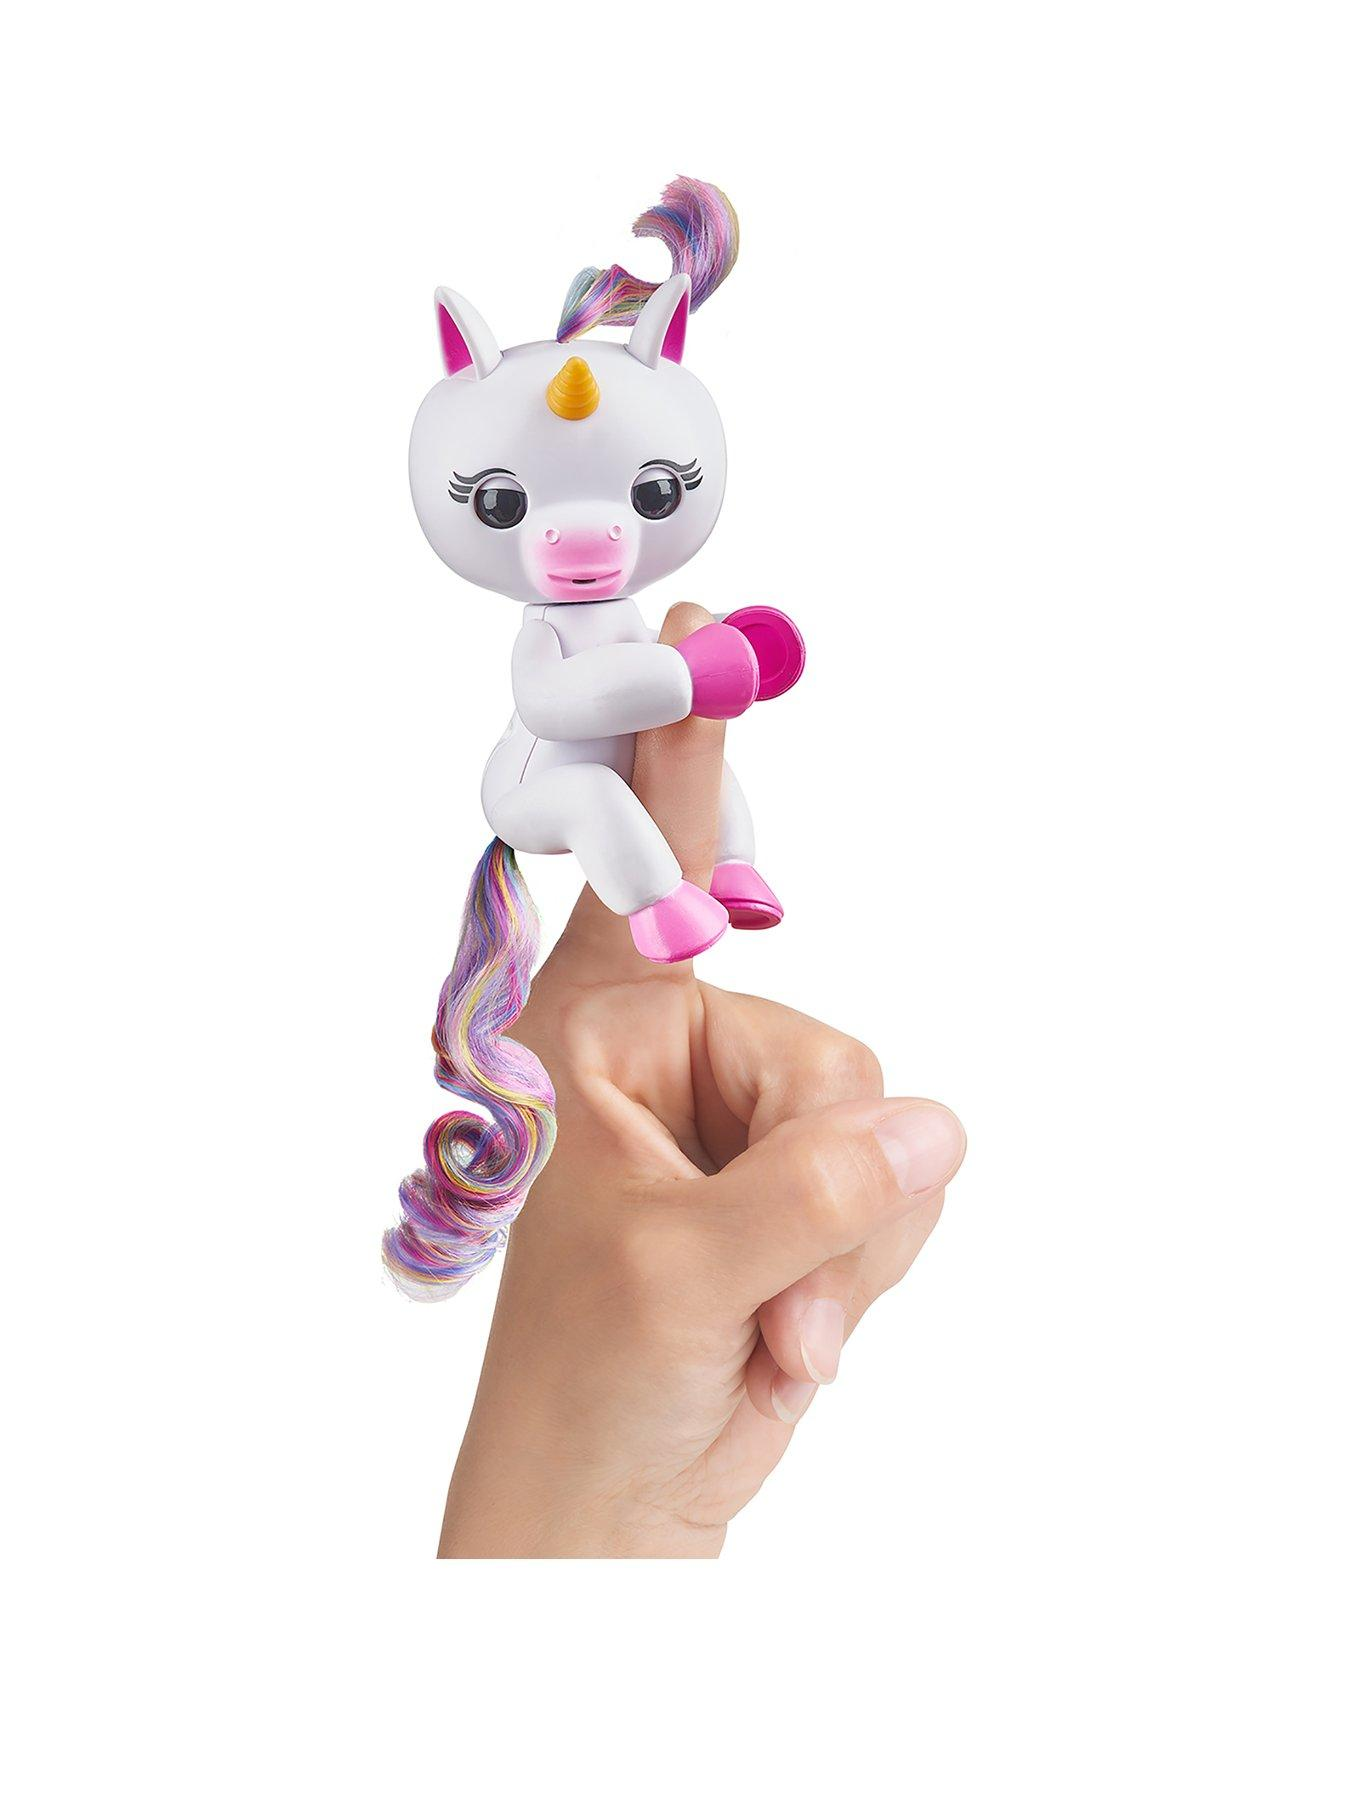 Compare prices for Fingerlings Wowwee Fingerlings Unicorn White